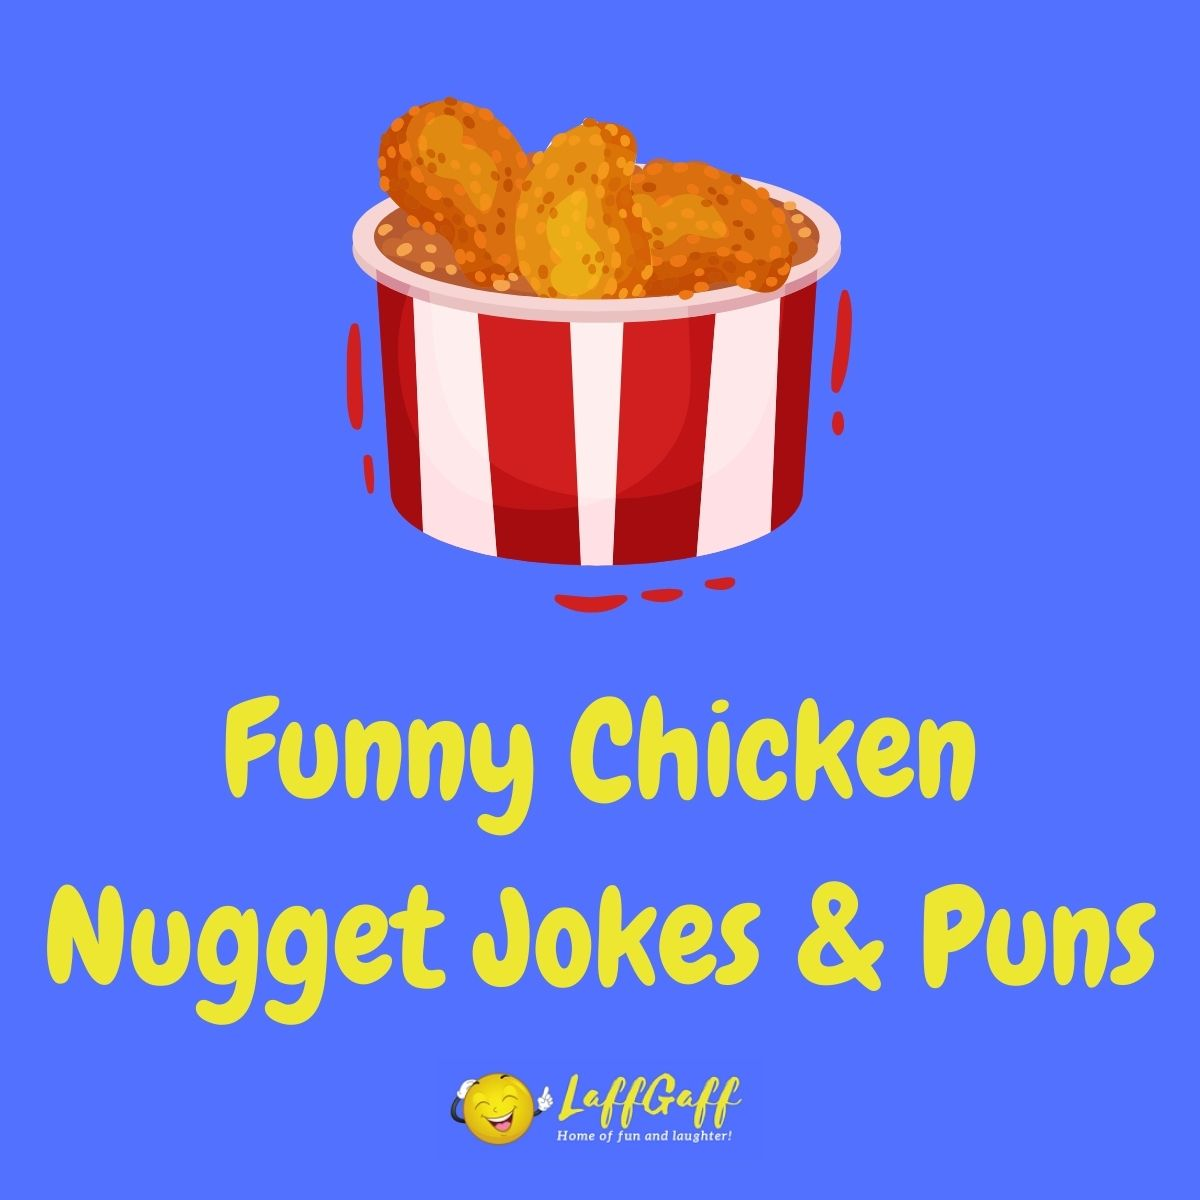 Featured image for a page of funny chicken nugget jokes and puns.